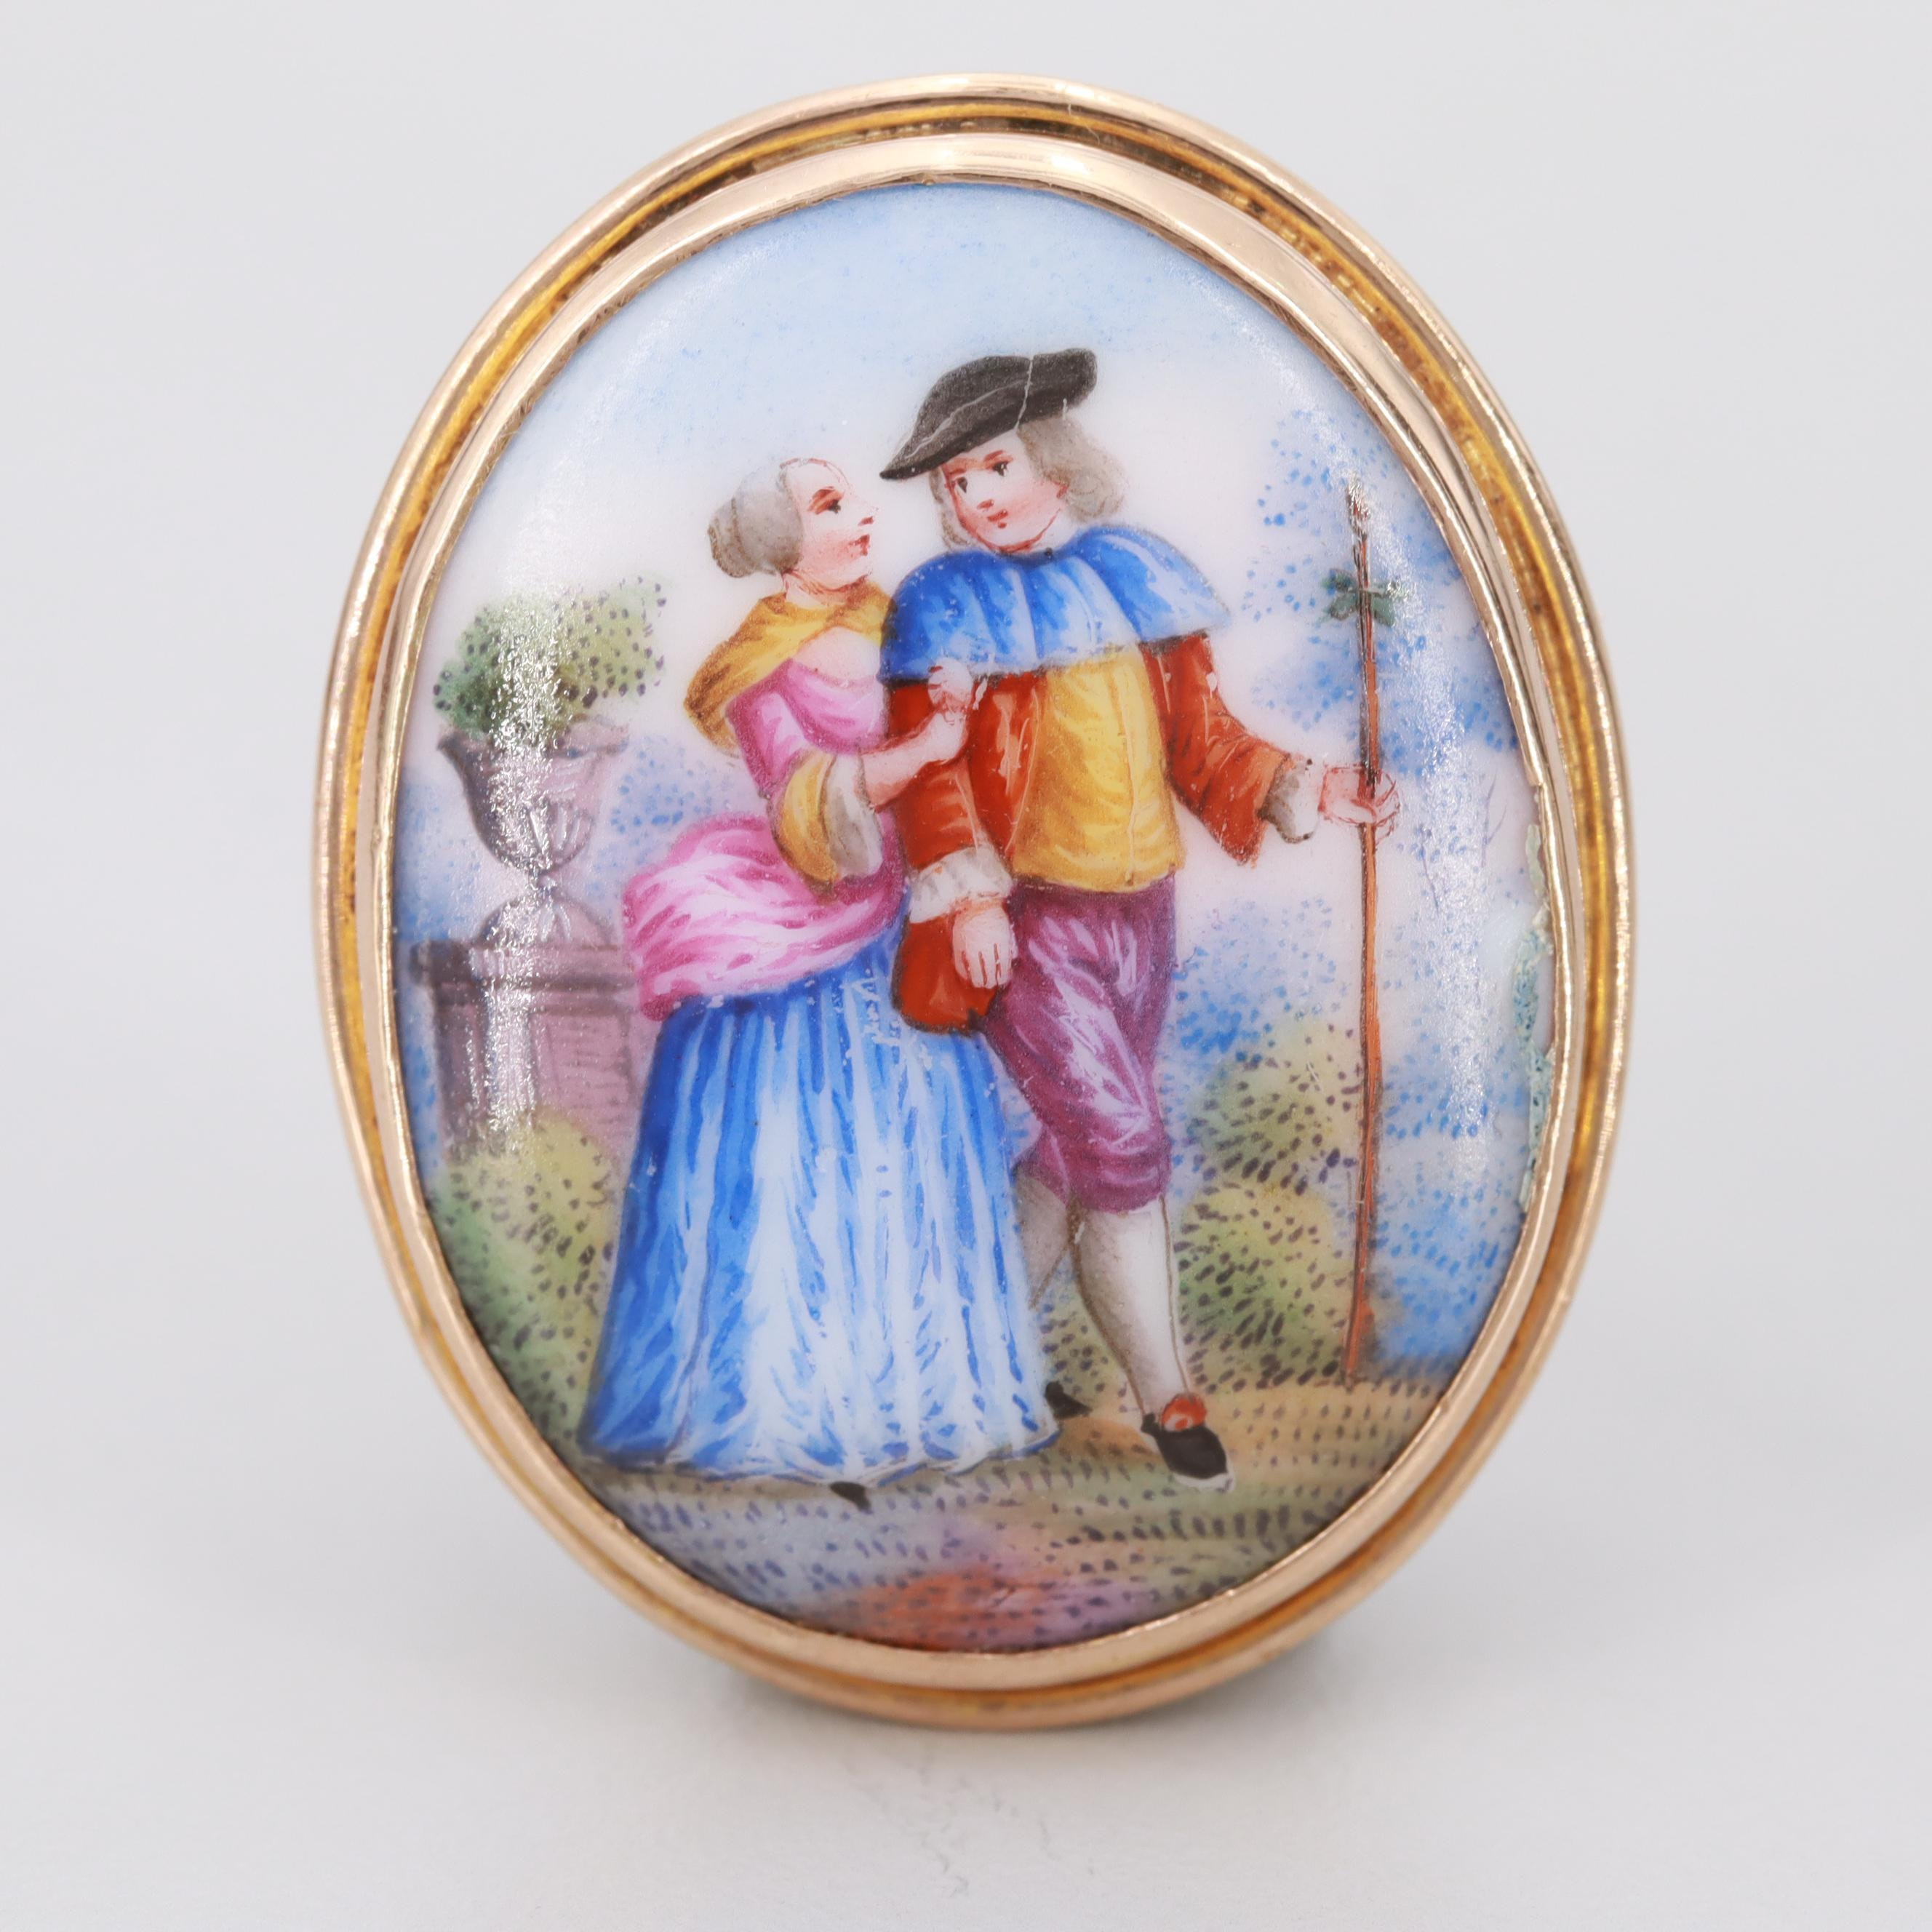 Vintage 10K Yellow Gold Porcelain Courting Couple Brooch